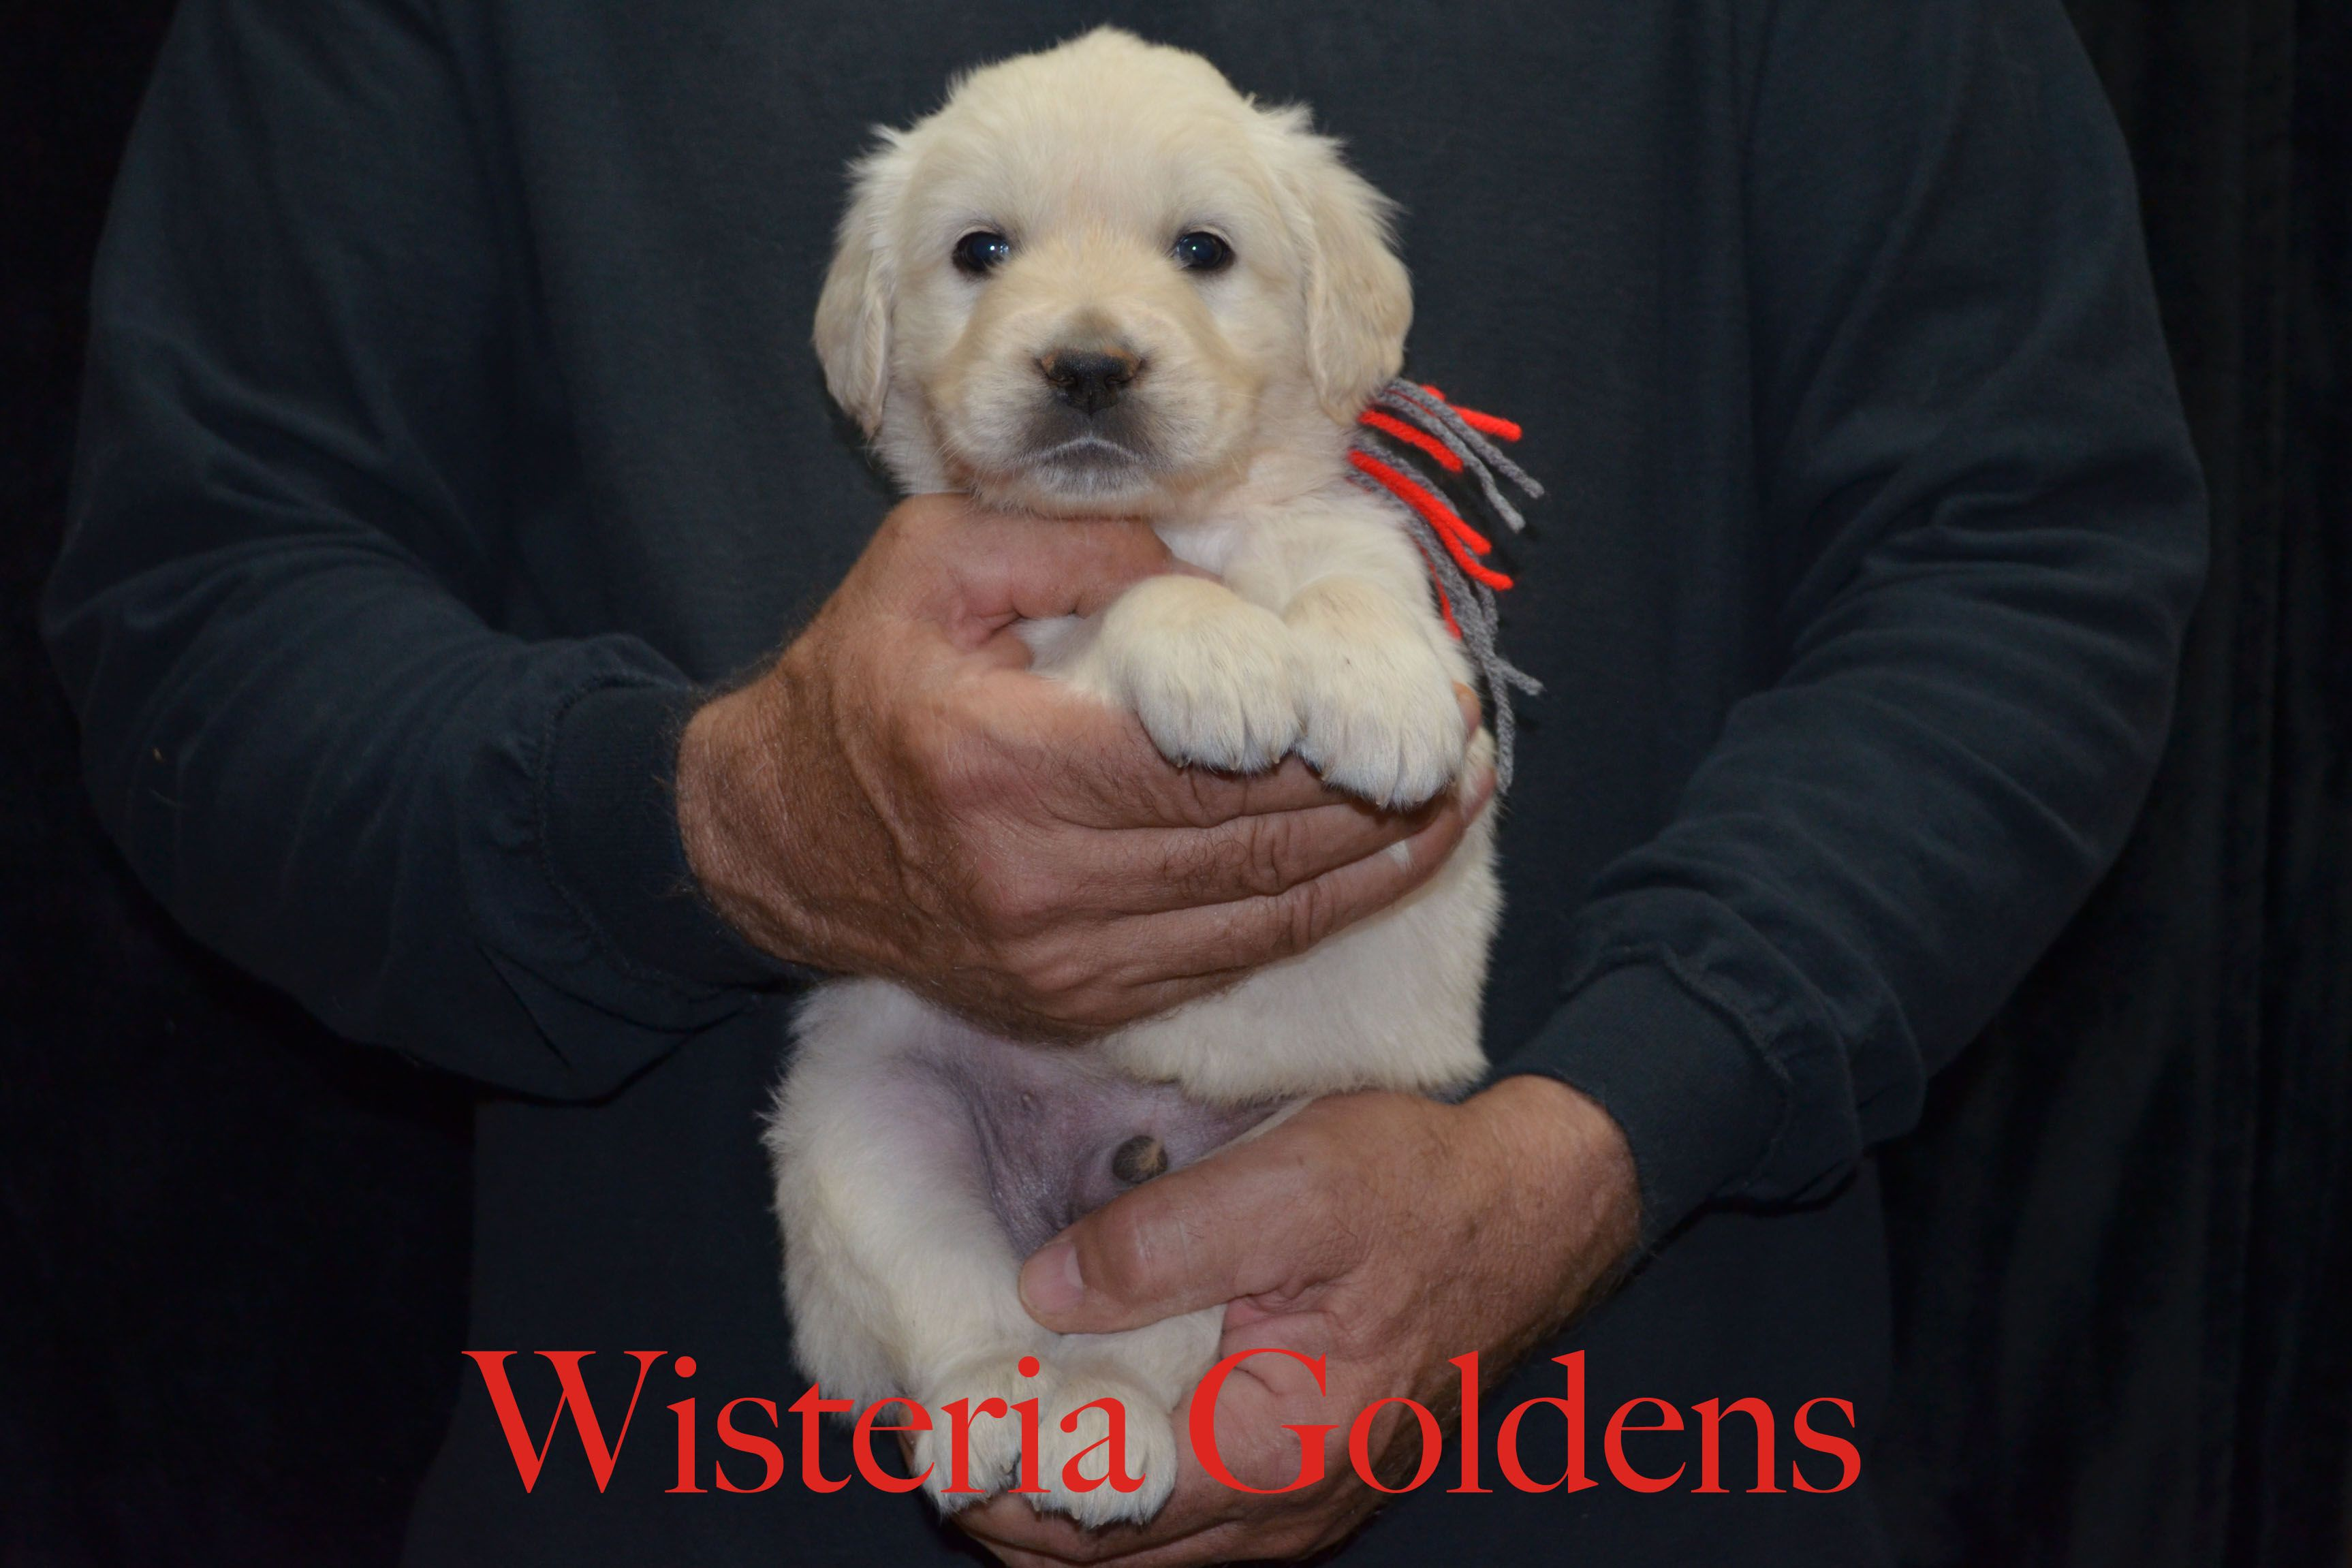 Wisteria goldens zoey litter puppies for sale golden